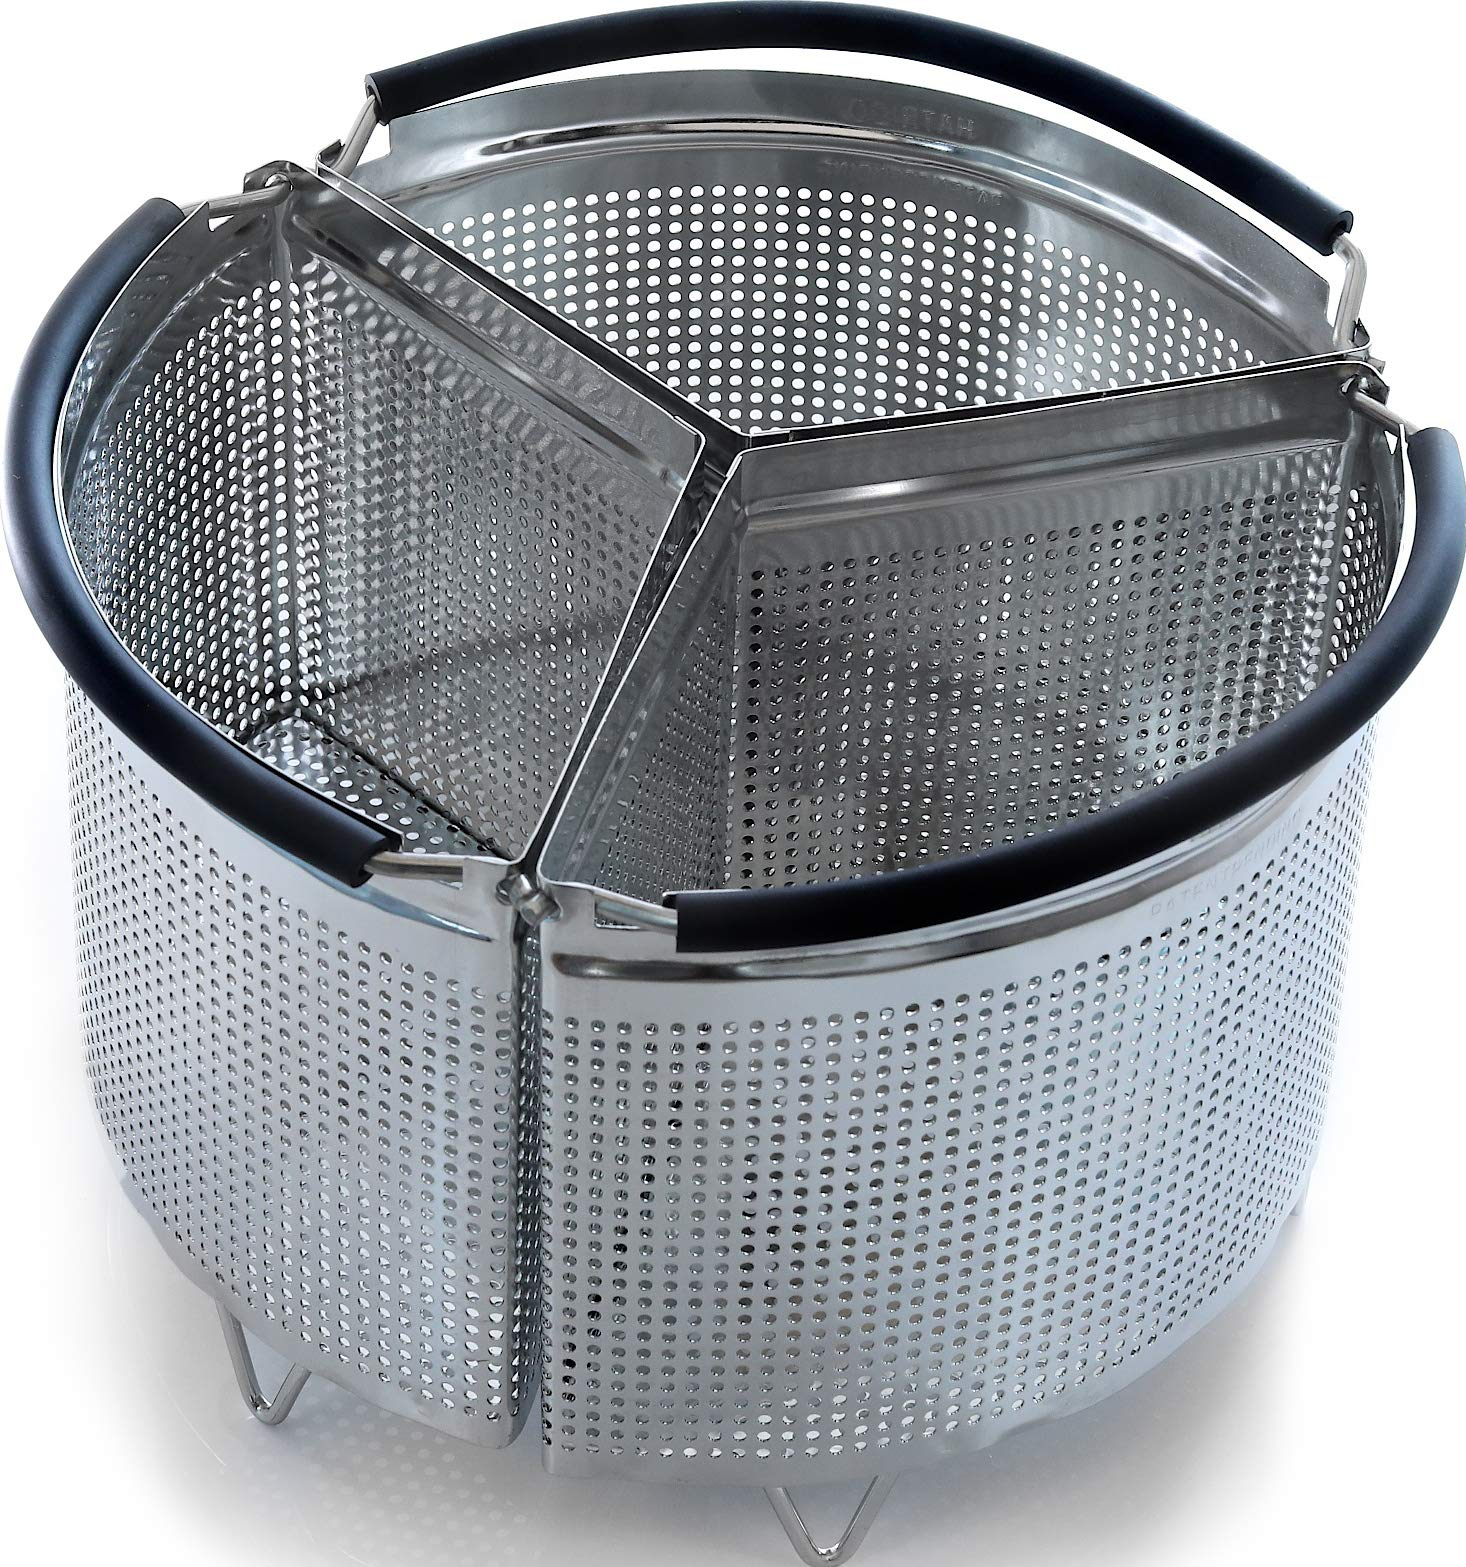 3-Piece Divided Steamer Basket for 6 Qt Pressure Cooker [3qt 8qt available] Compatible with Instant Pot Accessories Ninja Foodi Other Mullti Cookers, Strainer Insert Can Cook 3-in-1, for IP 6 Quart by Hatrigo